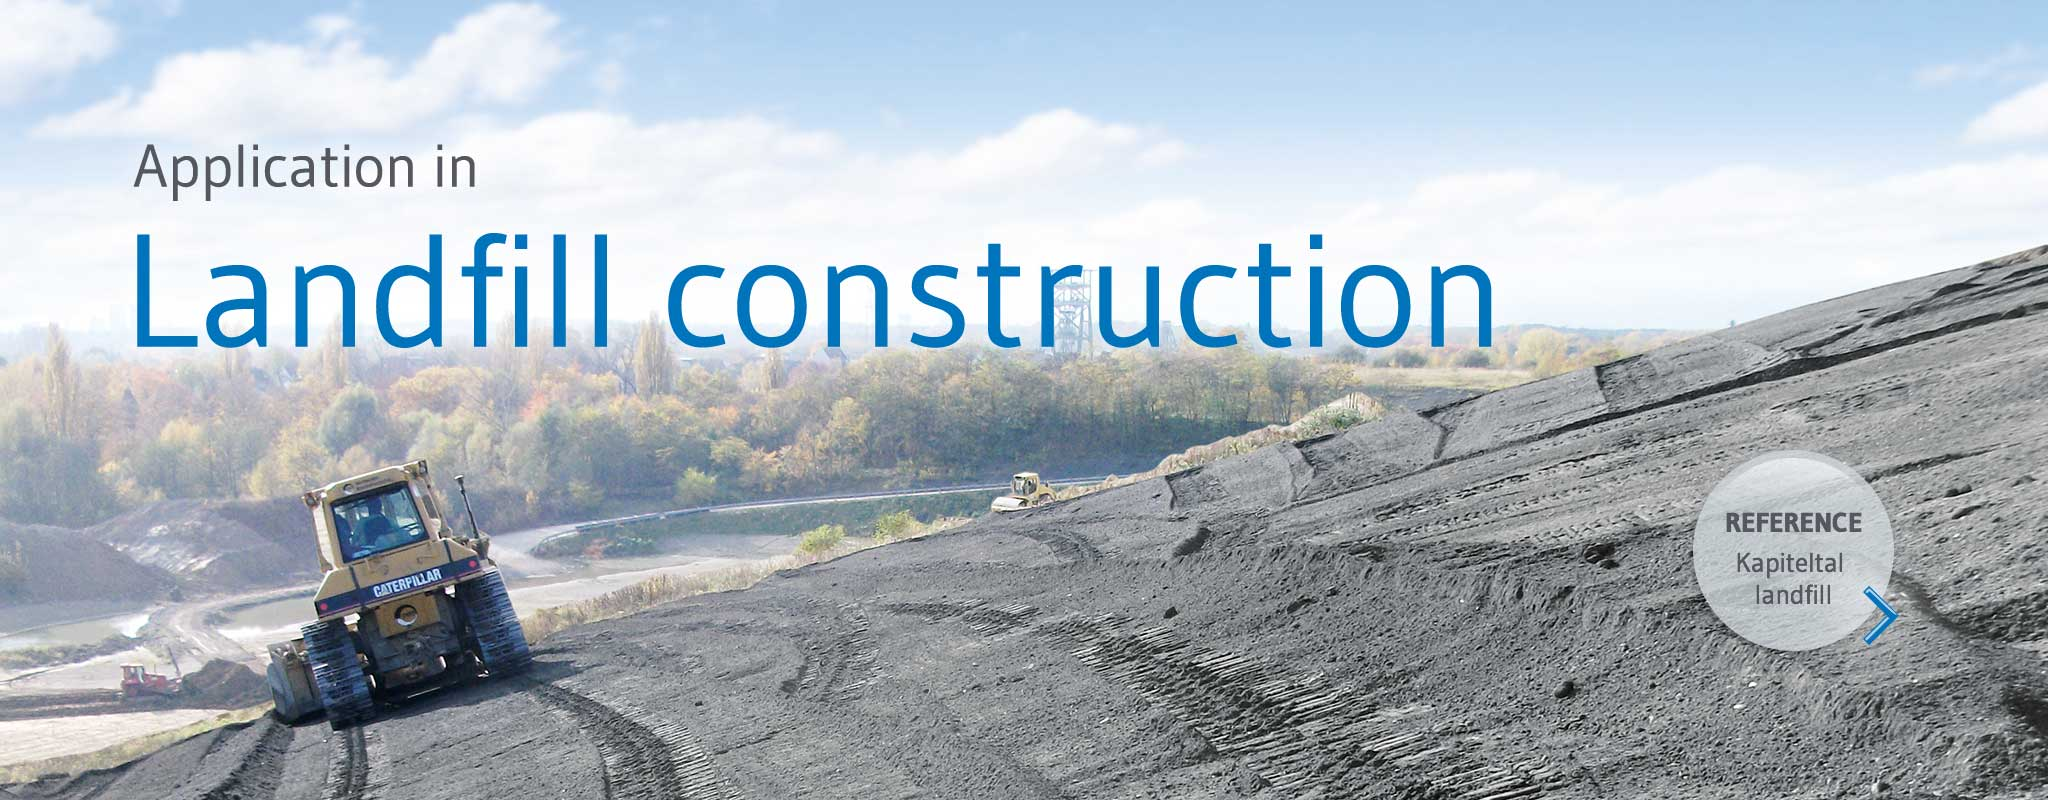 Secondary construction material granova® for construction of landfill sites